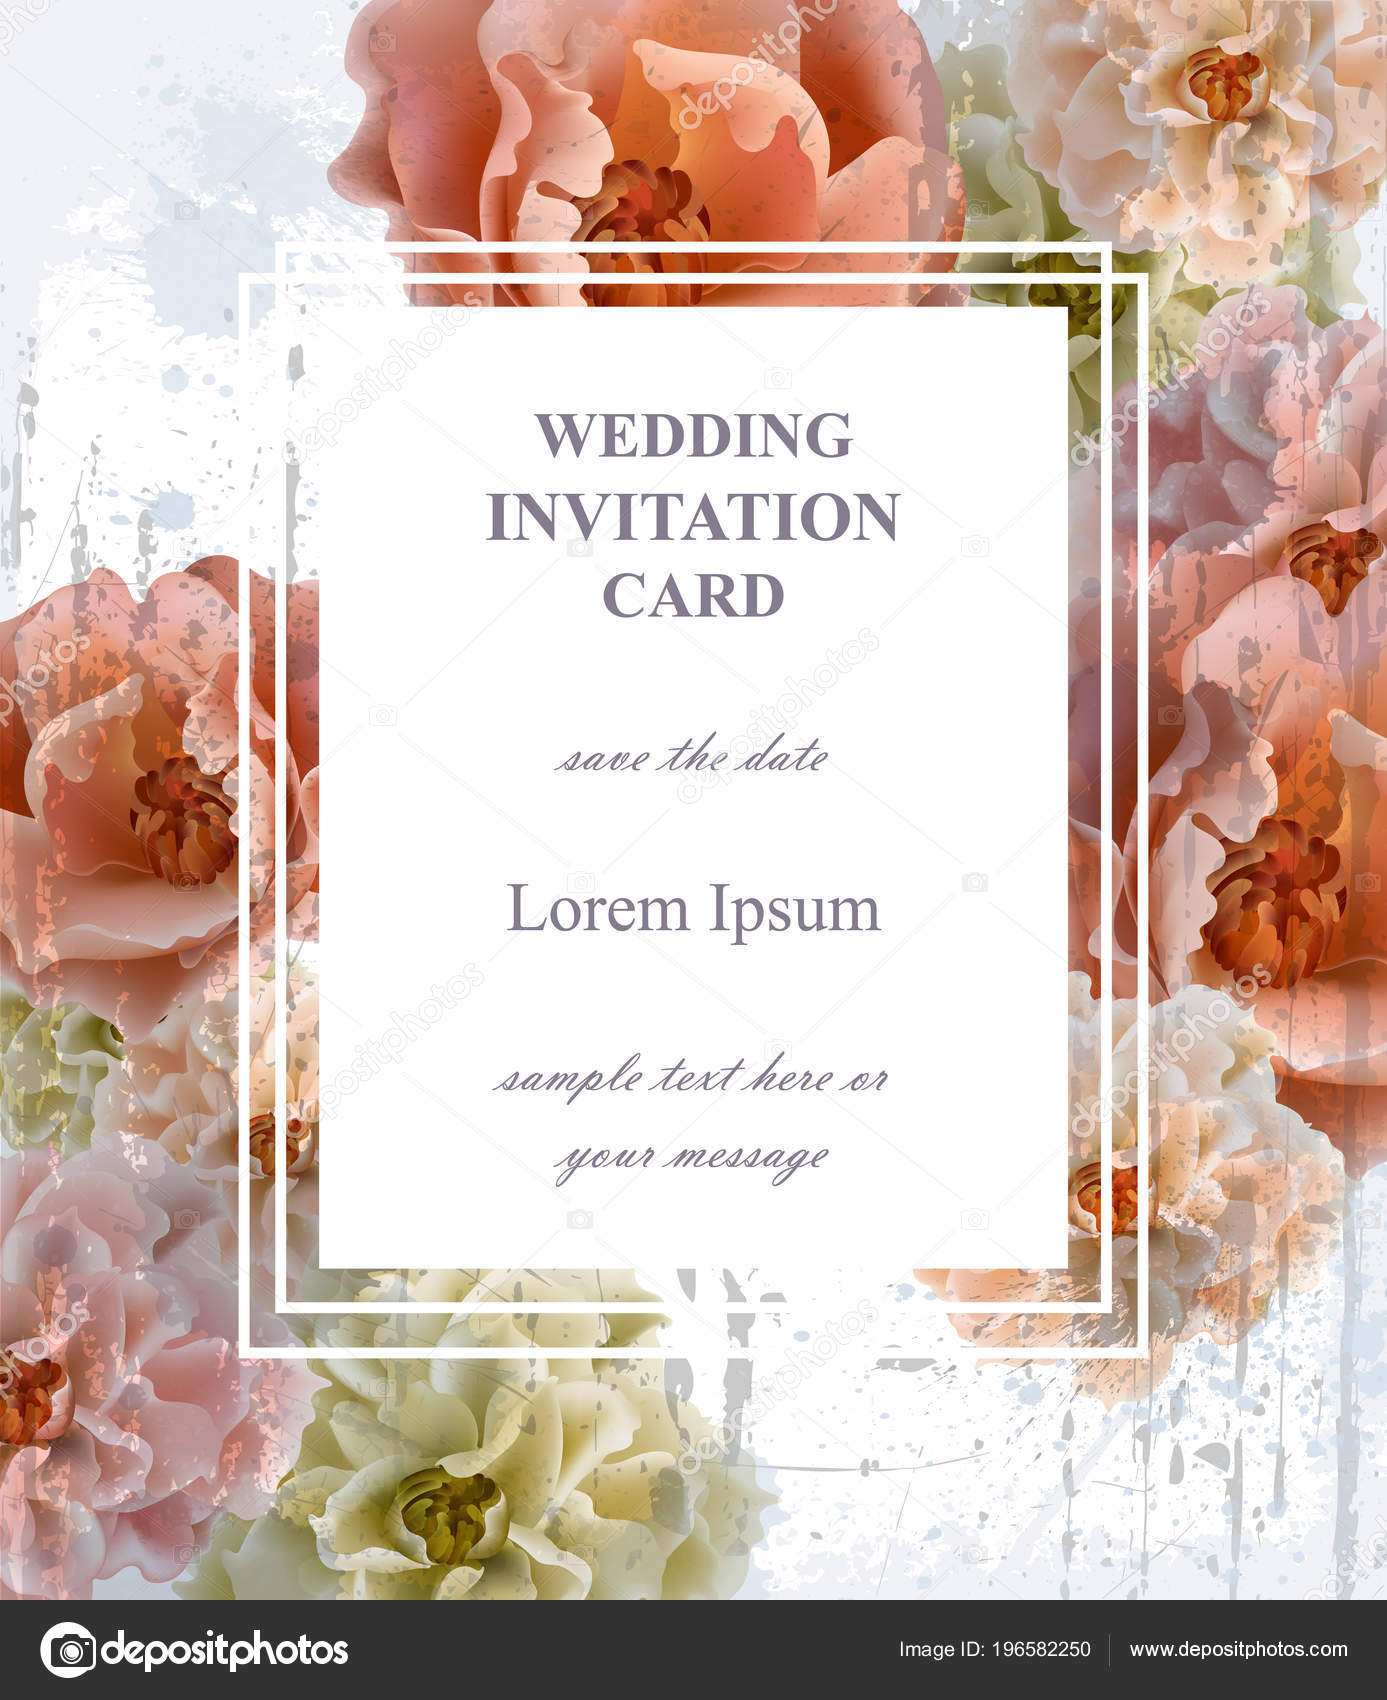 Wedding invitation card Vector. Beautiful floral frame vertical. Banner poster template 3d backgrounds —